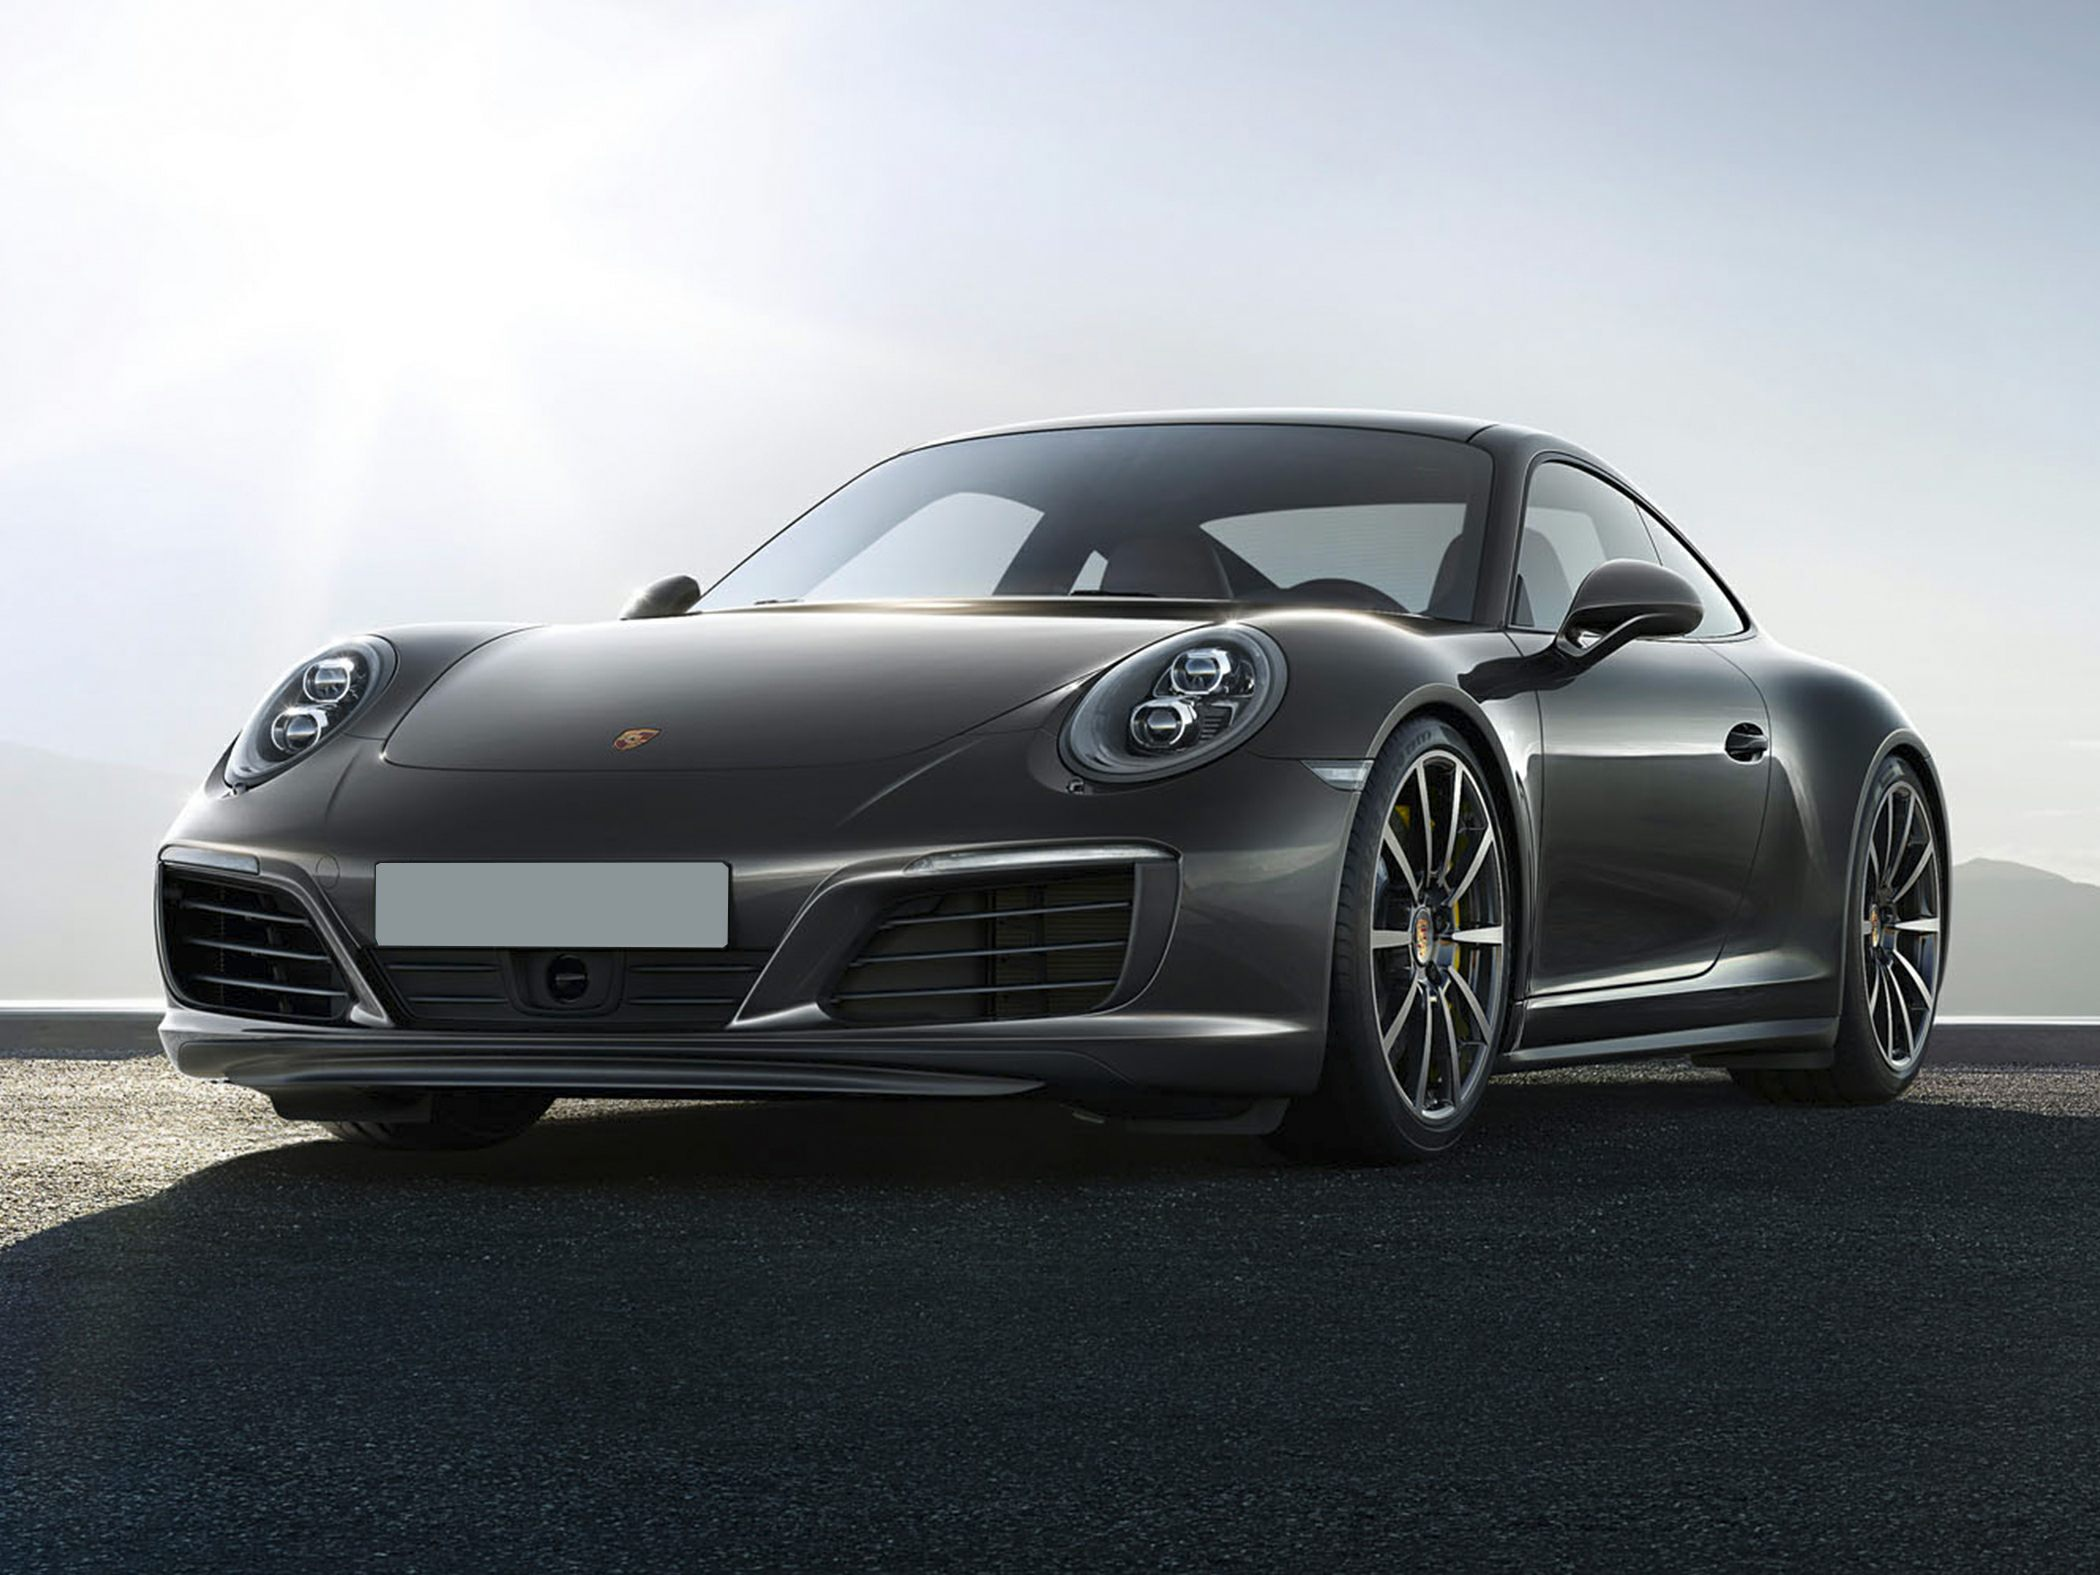 2019 Porsche 911 Carrera 4 GTS 2dr All wheel Drive Coupe Safety Features